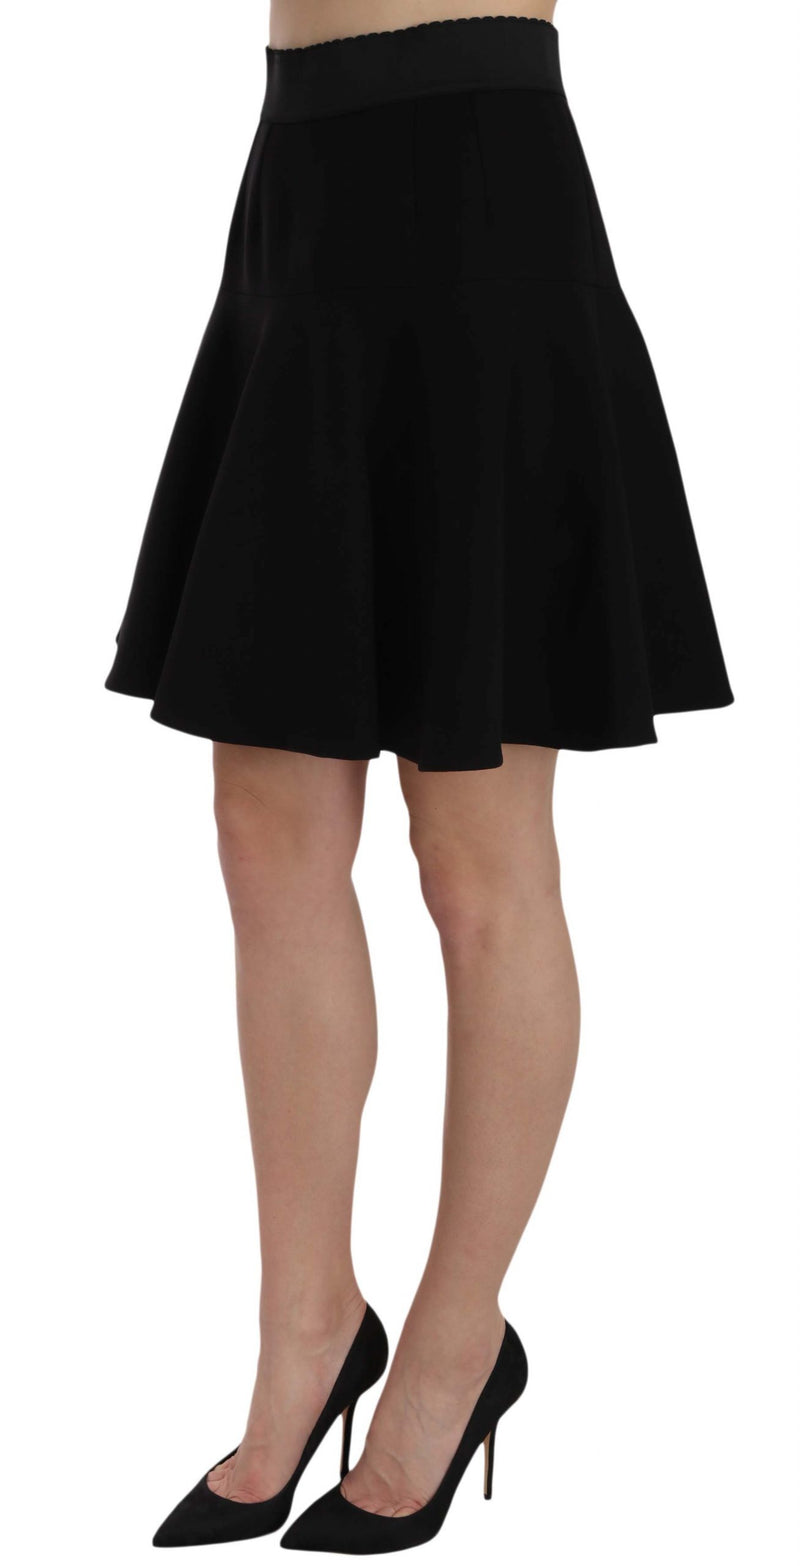 Black Solid A-line Fluted High Waist Mini Skirt